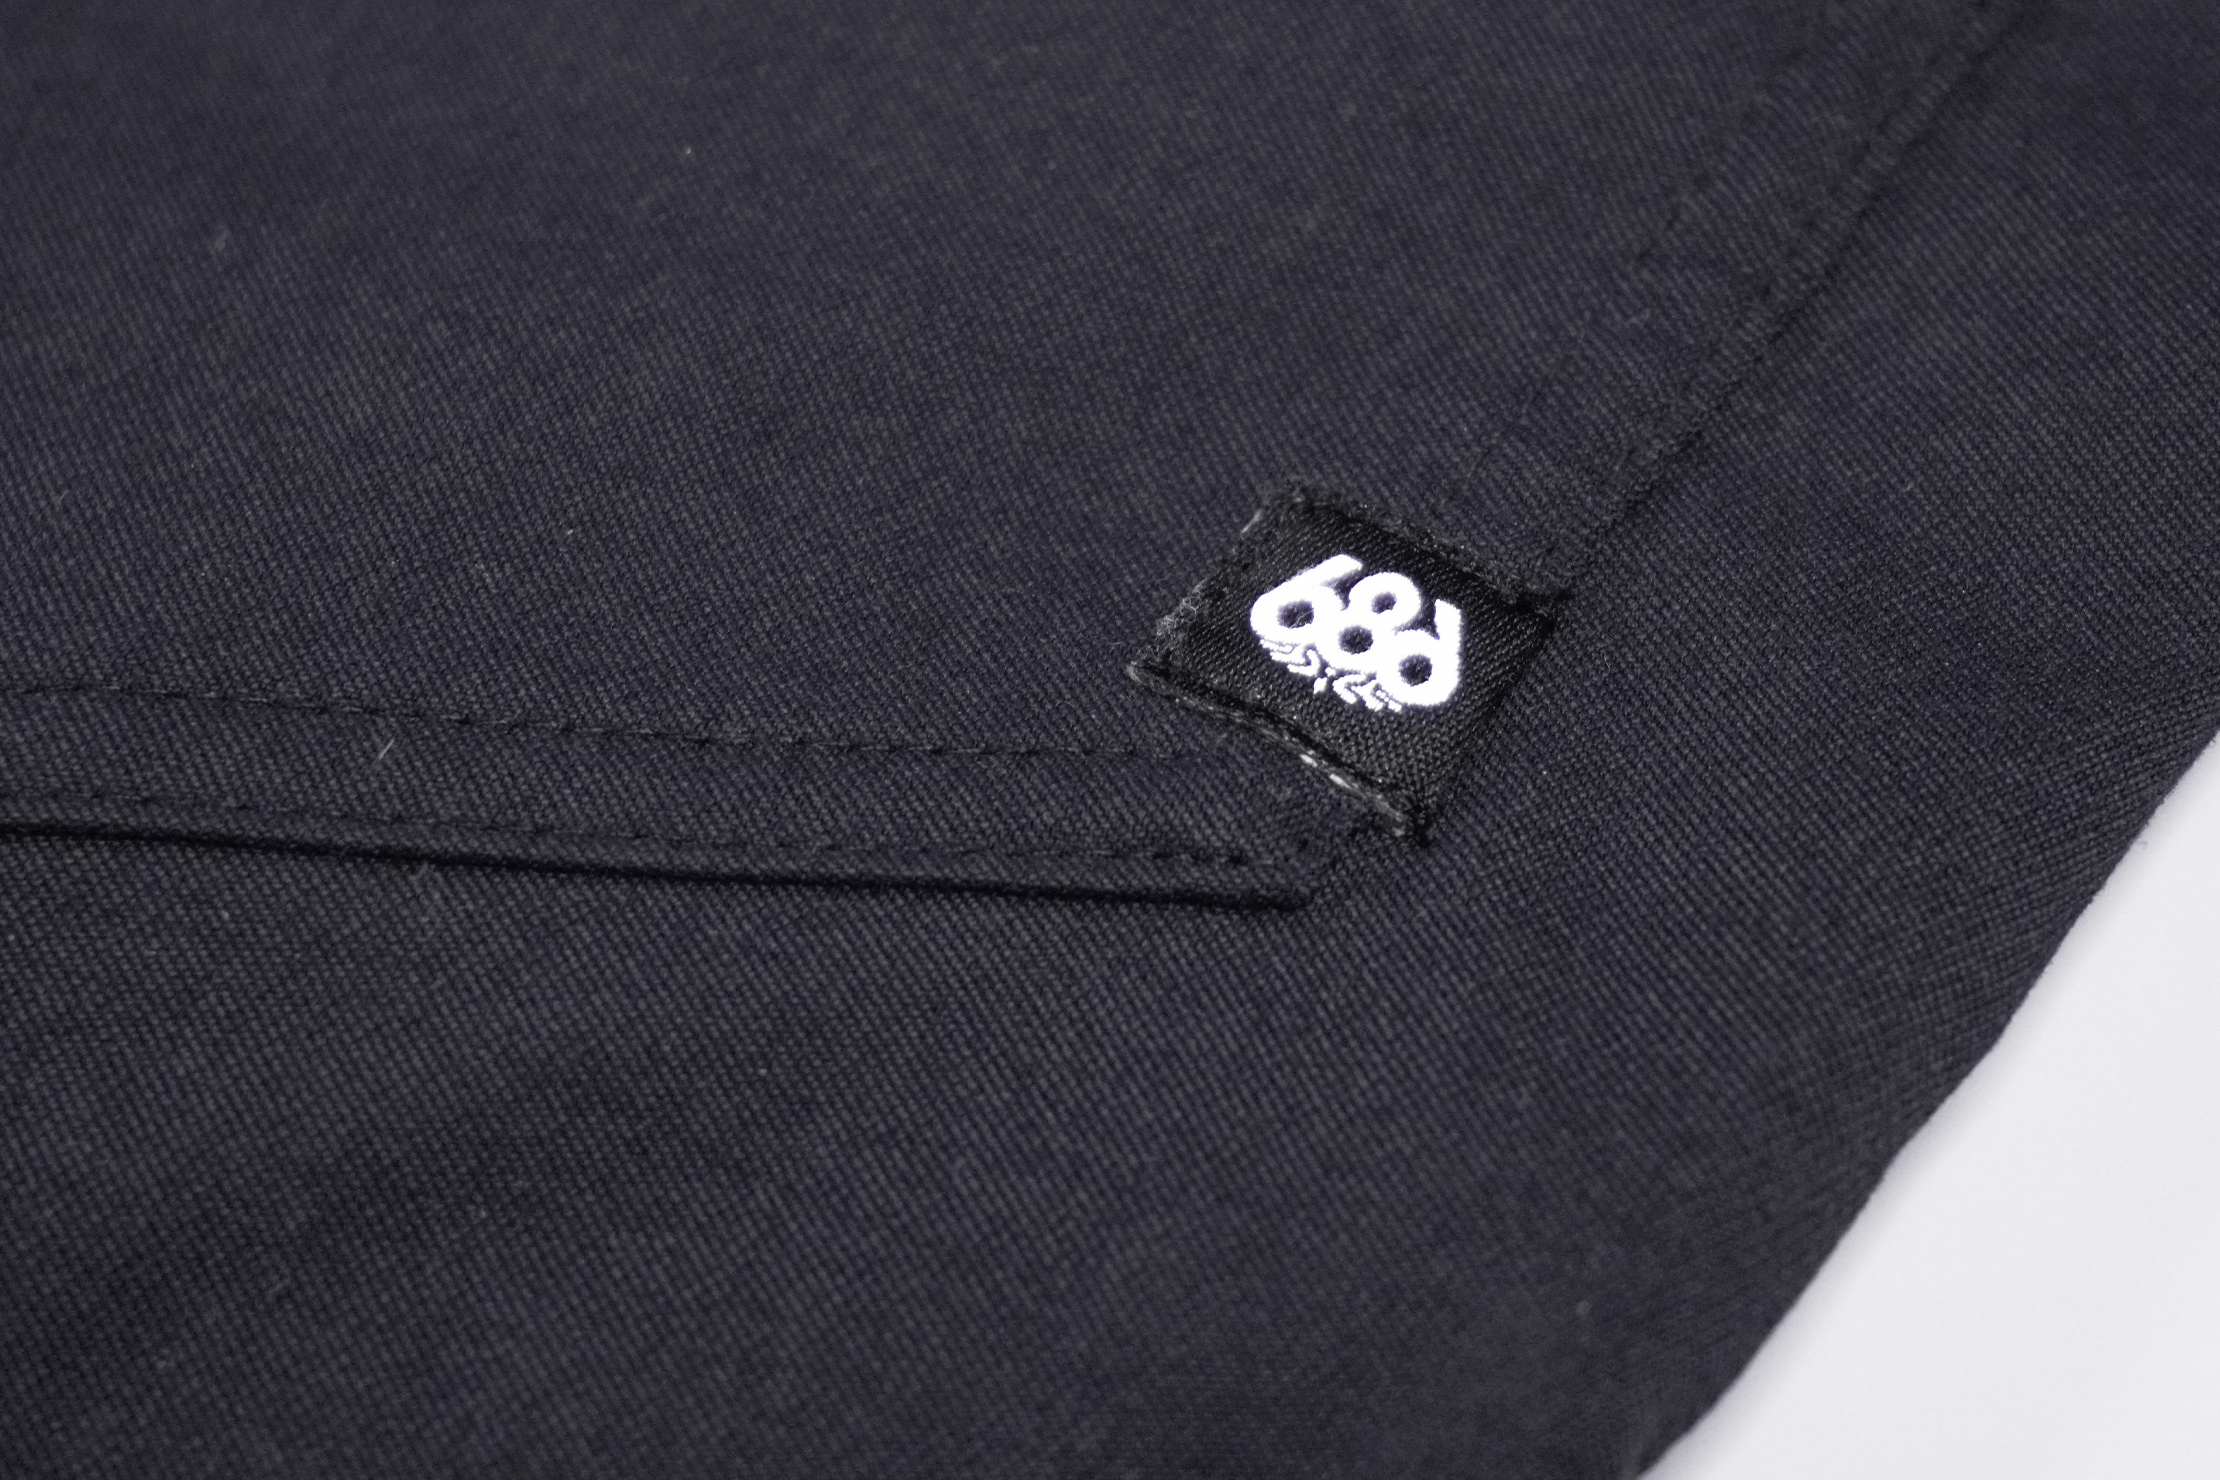 686 Everywhere Multi Pant Material and Logo